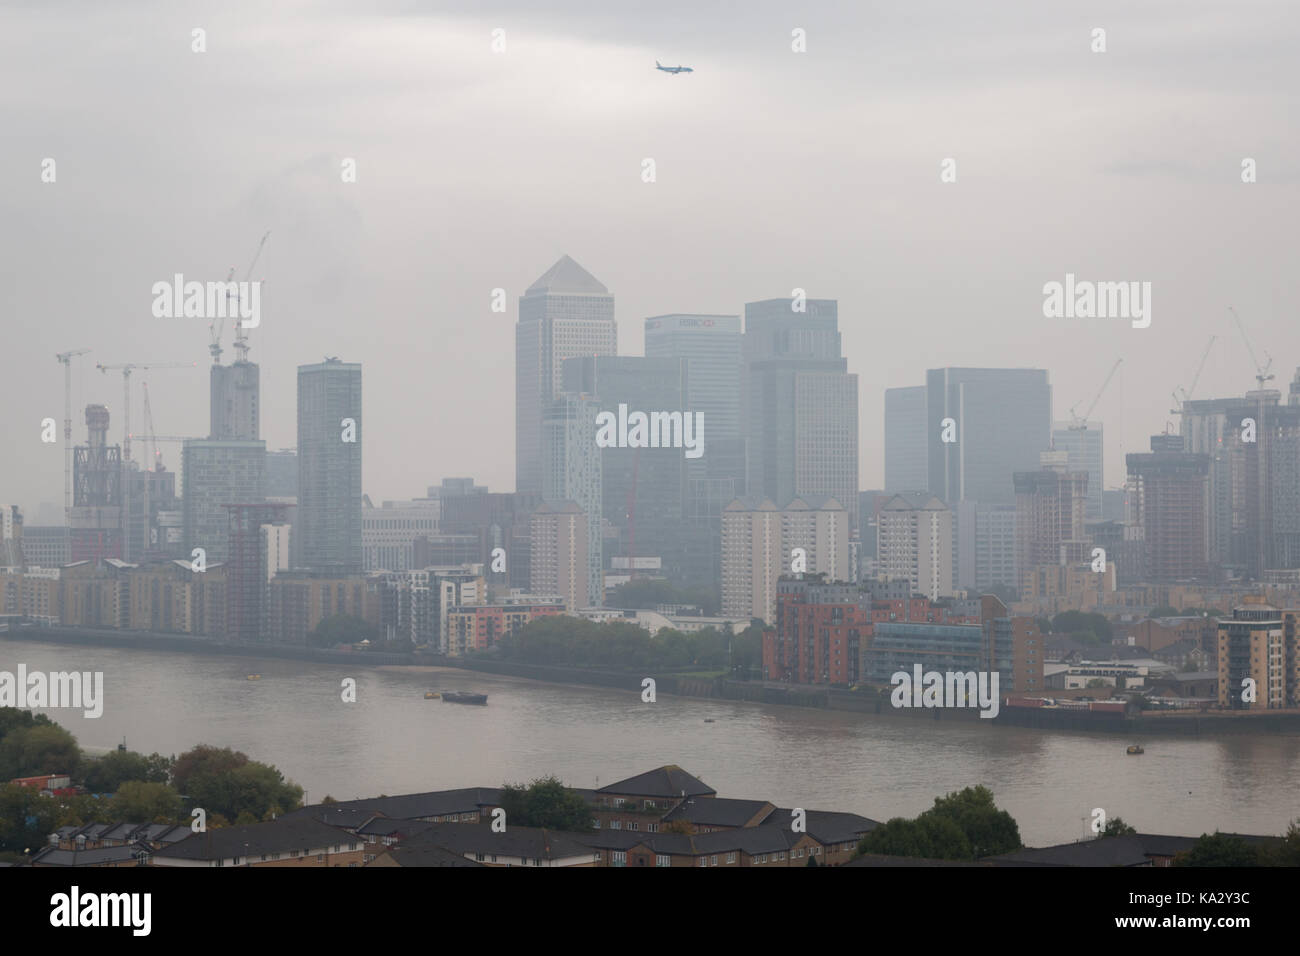 London, UK. 25th Sept, 2017. UK Weather: Morning city haze and cloud over Canary Wharf business park buildings in Stock Photo